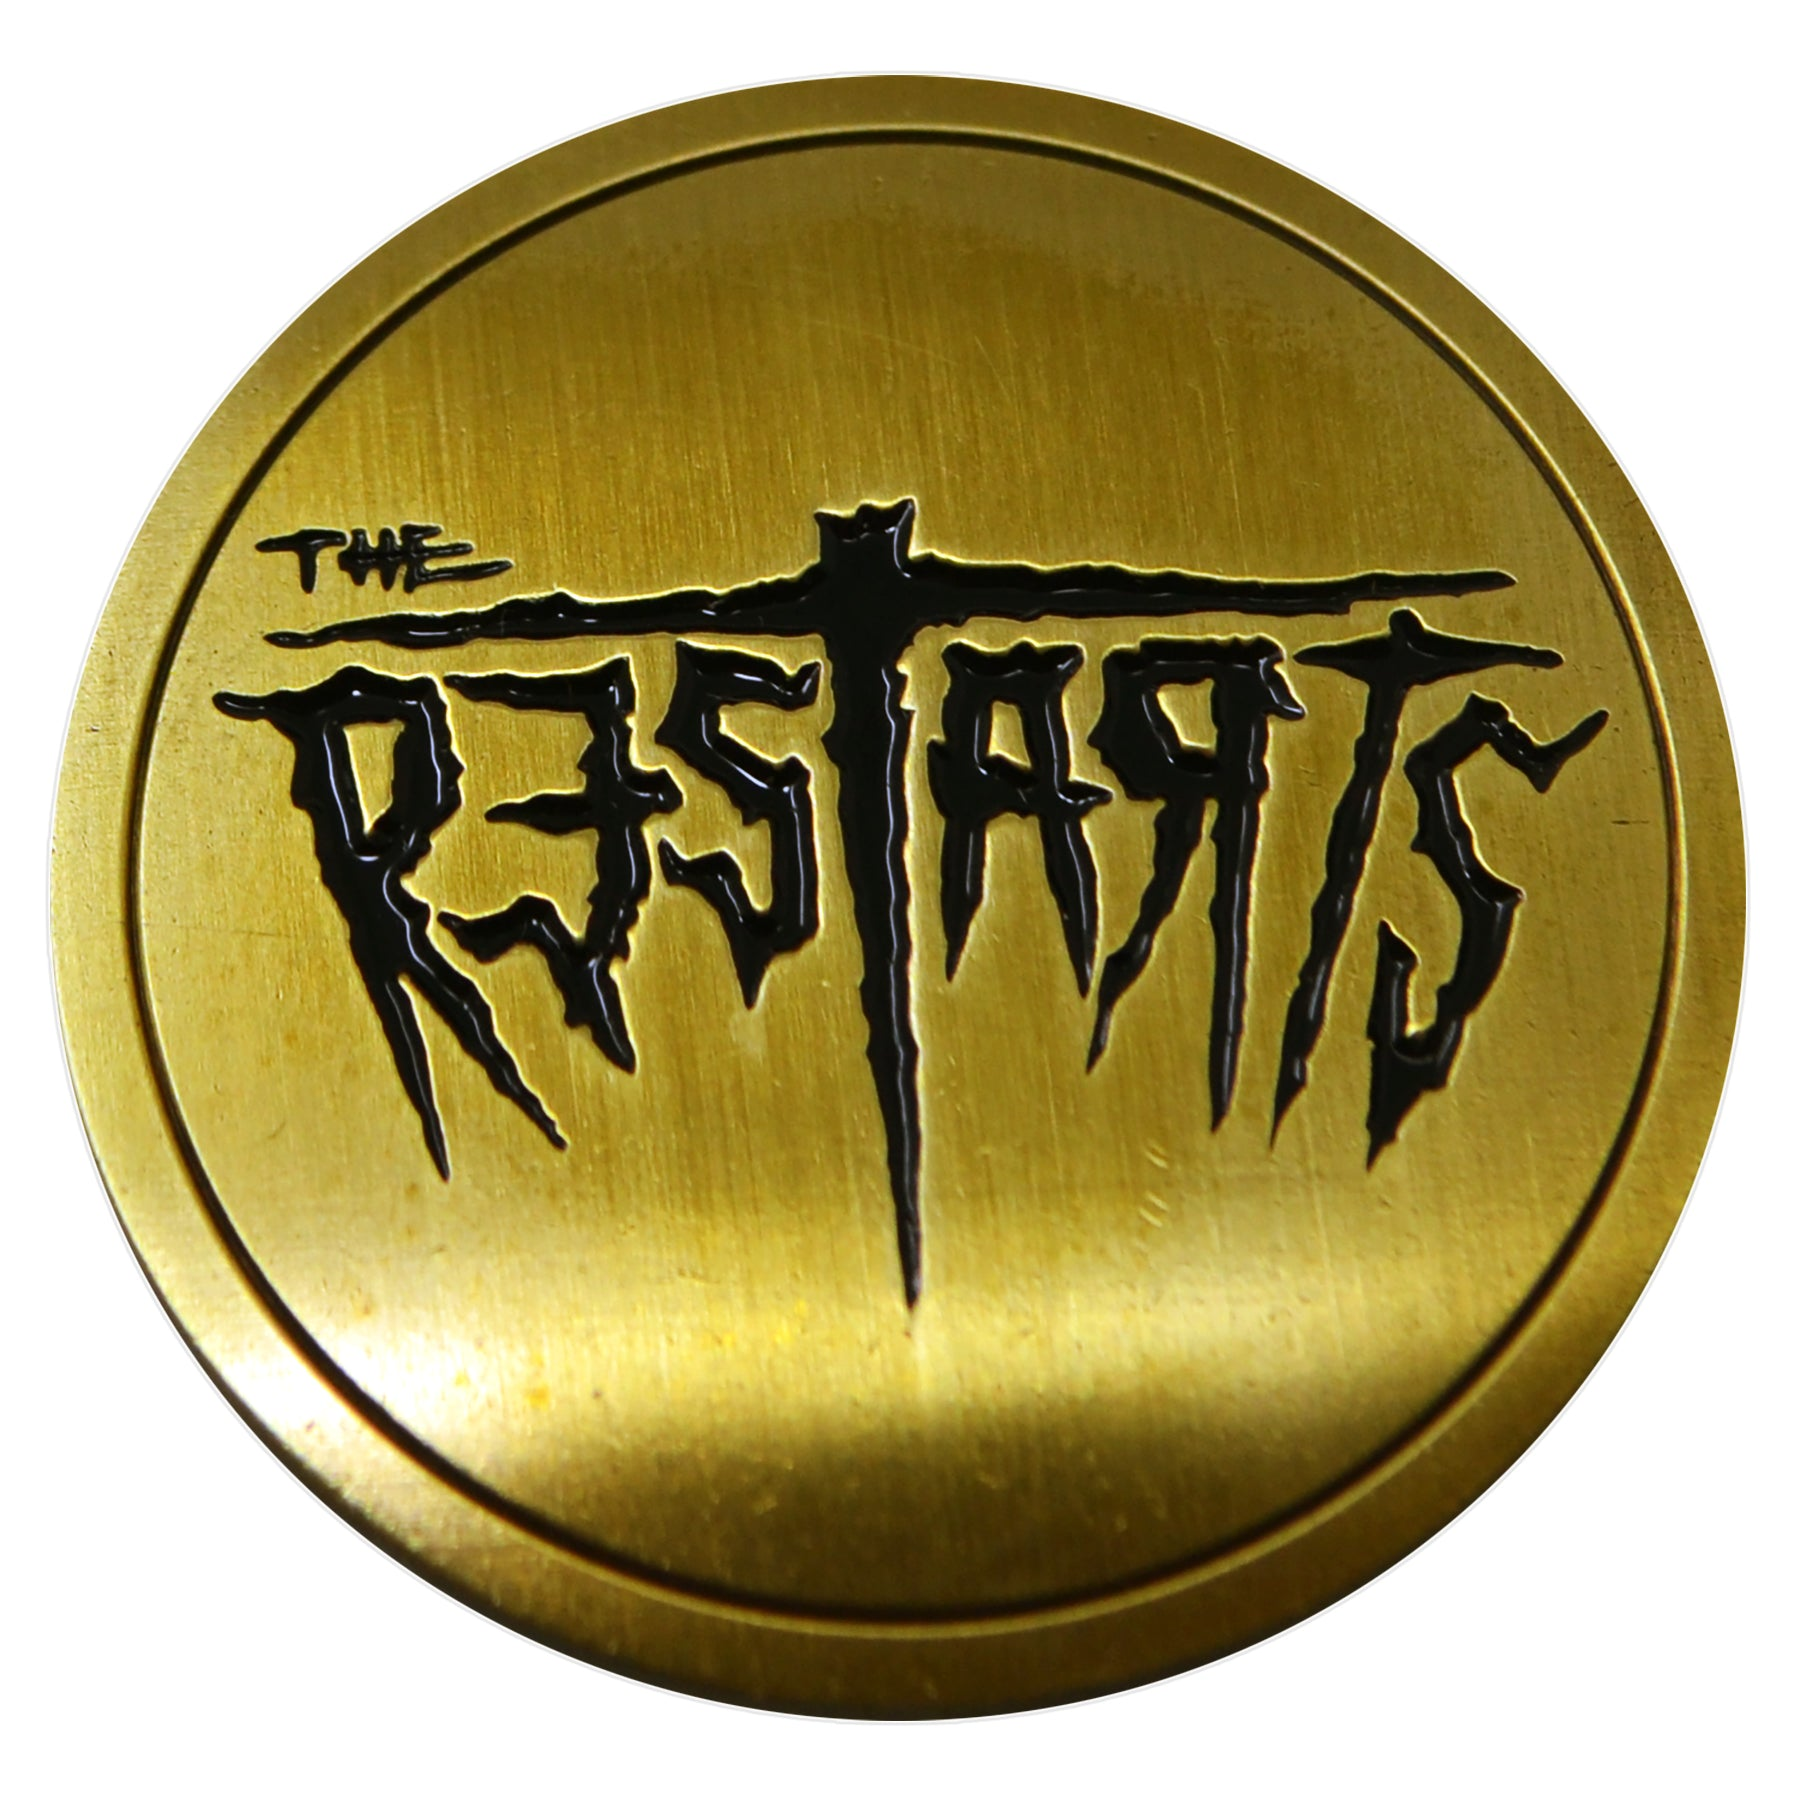 "The Restarts - Logo - Bronze on Black - 1.5"" Enamel Pin"